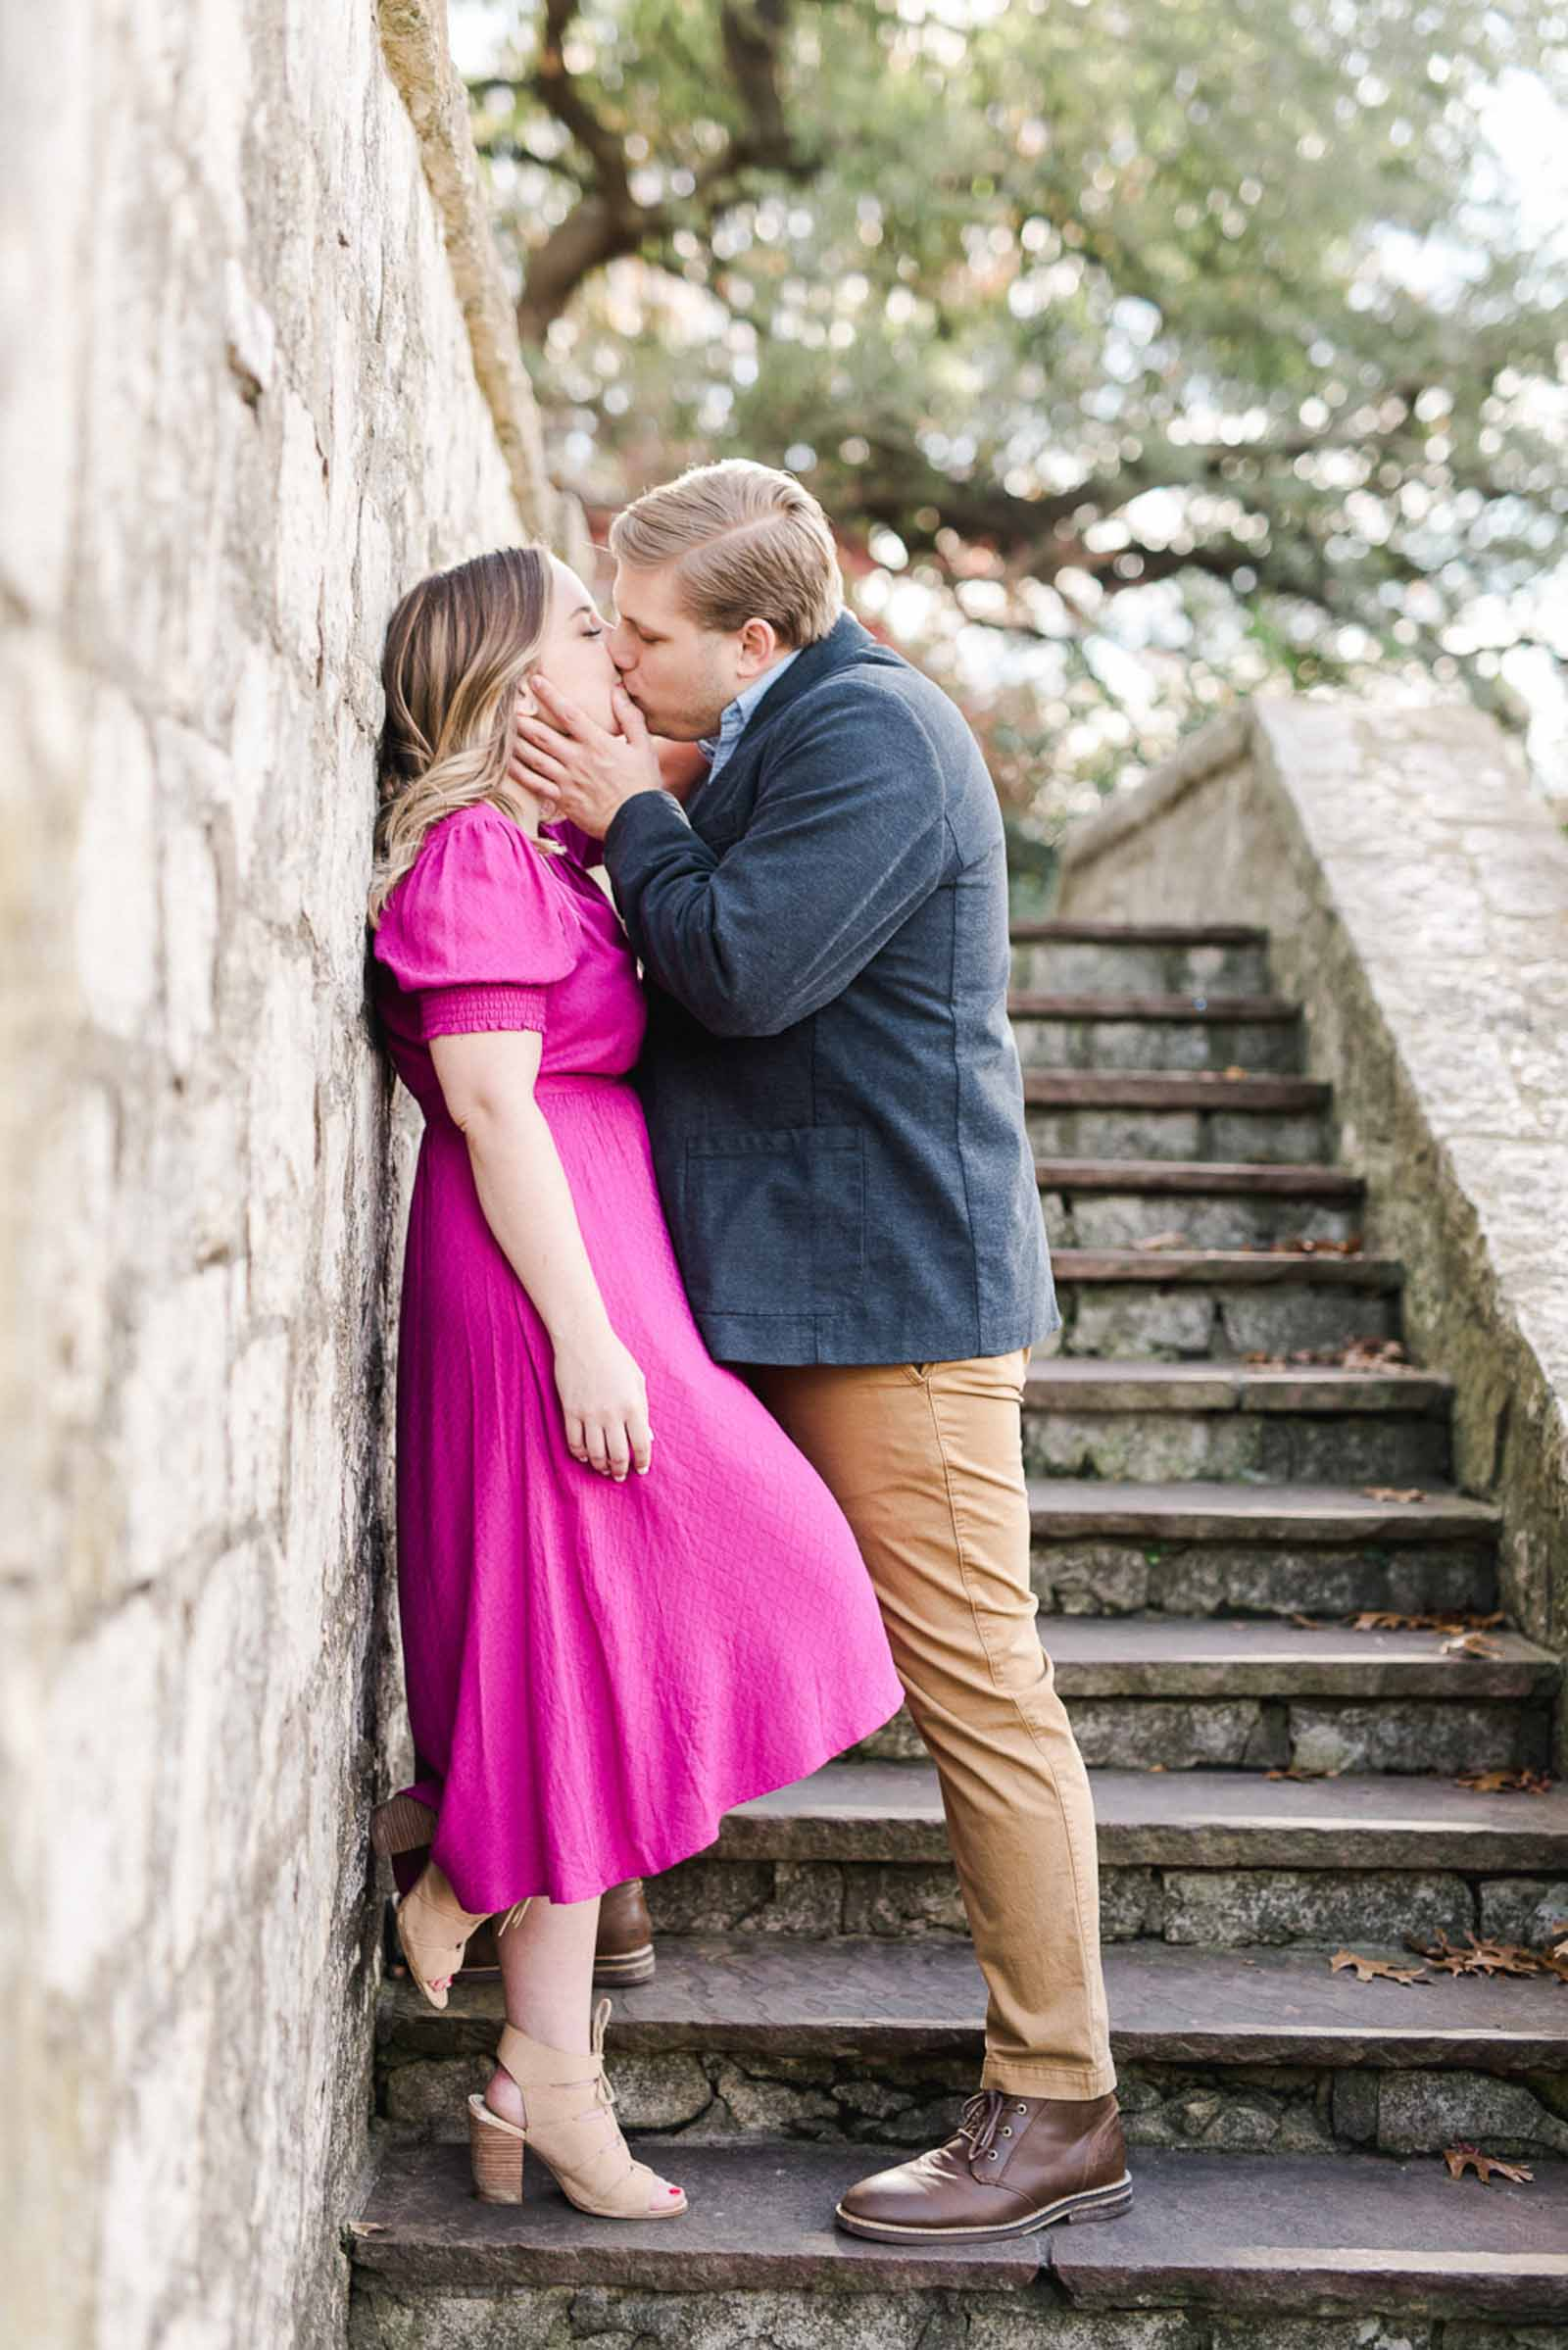 Dallas Arboretum Engagement-JenSymes-23.jpg